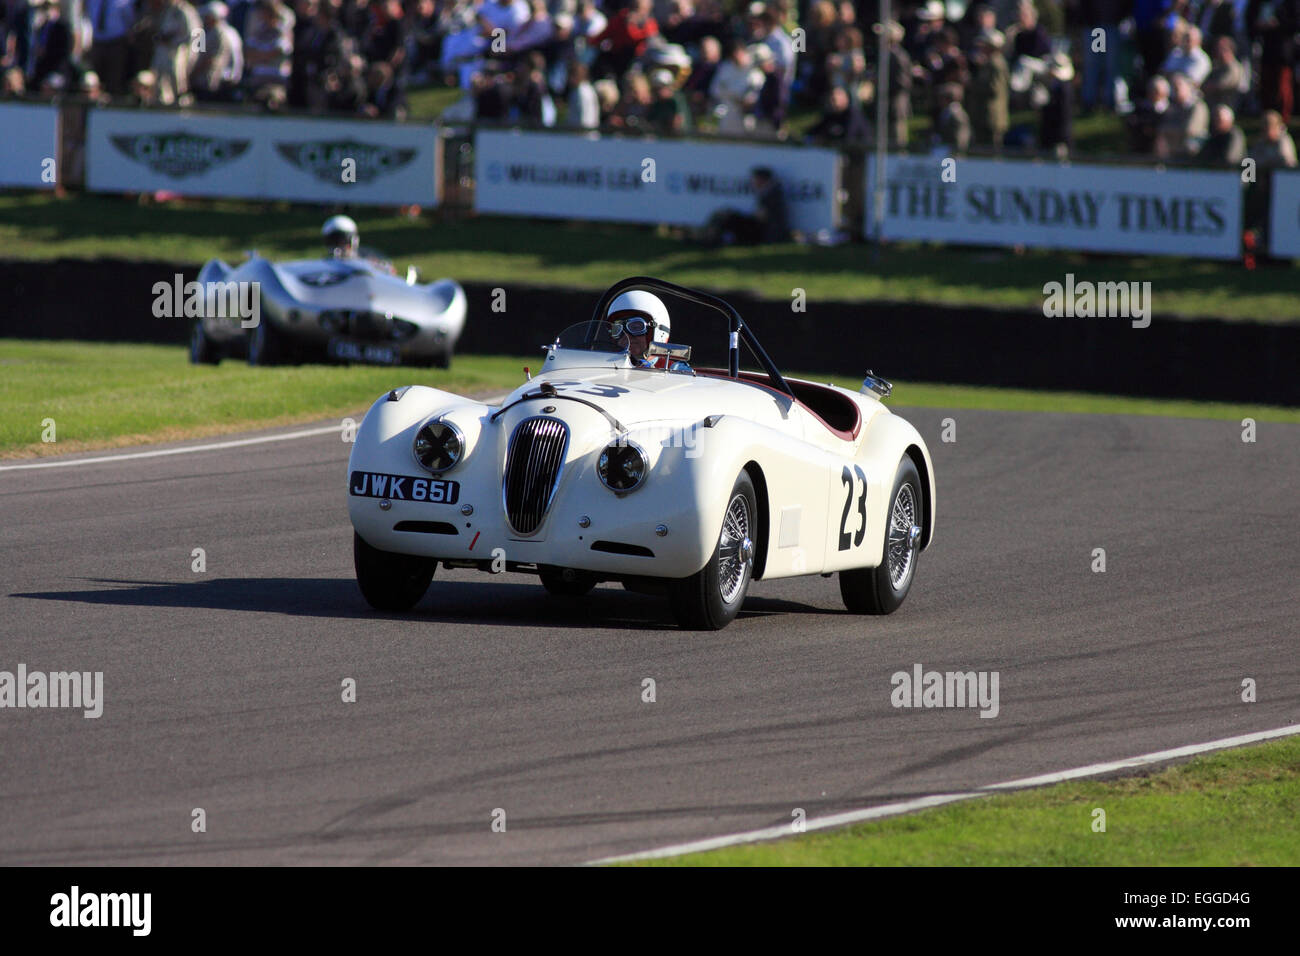 1950 Jaguar XK120 angetrieben von Stephen Bond aus Madgwick Ecke / Goodwood Revival / Goodwood / UK Stockbild